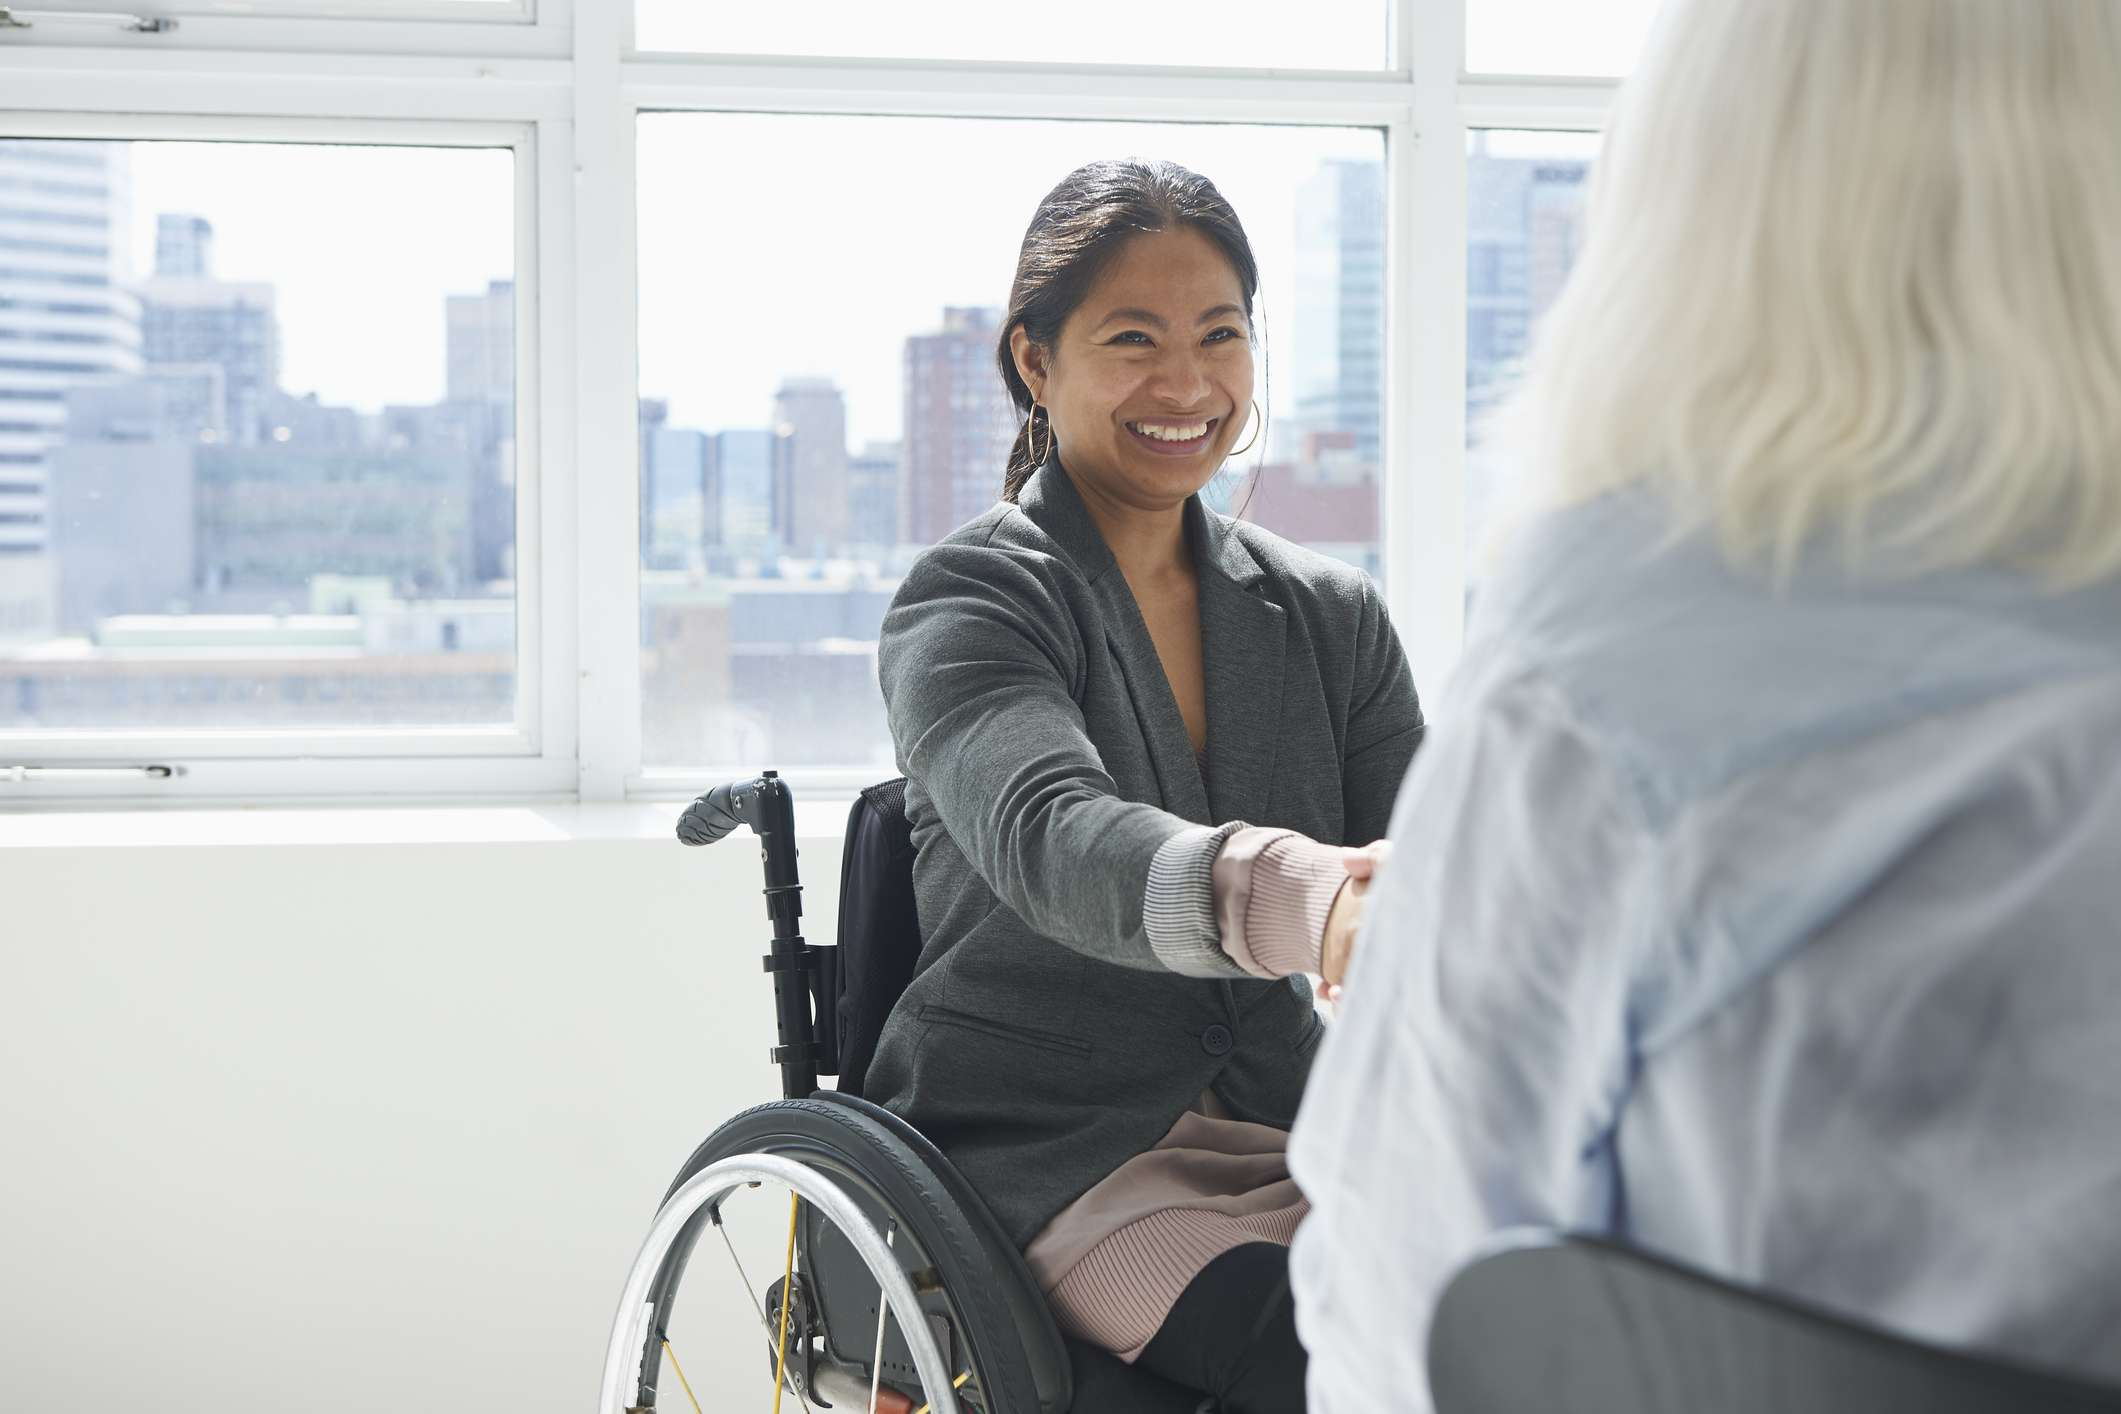 Businesswoman in a wheelchair shaking hands with another person